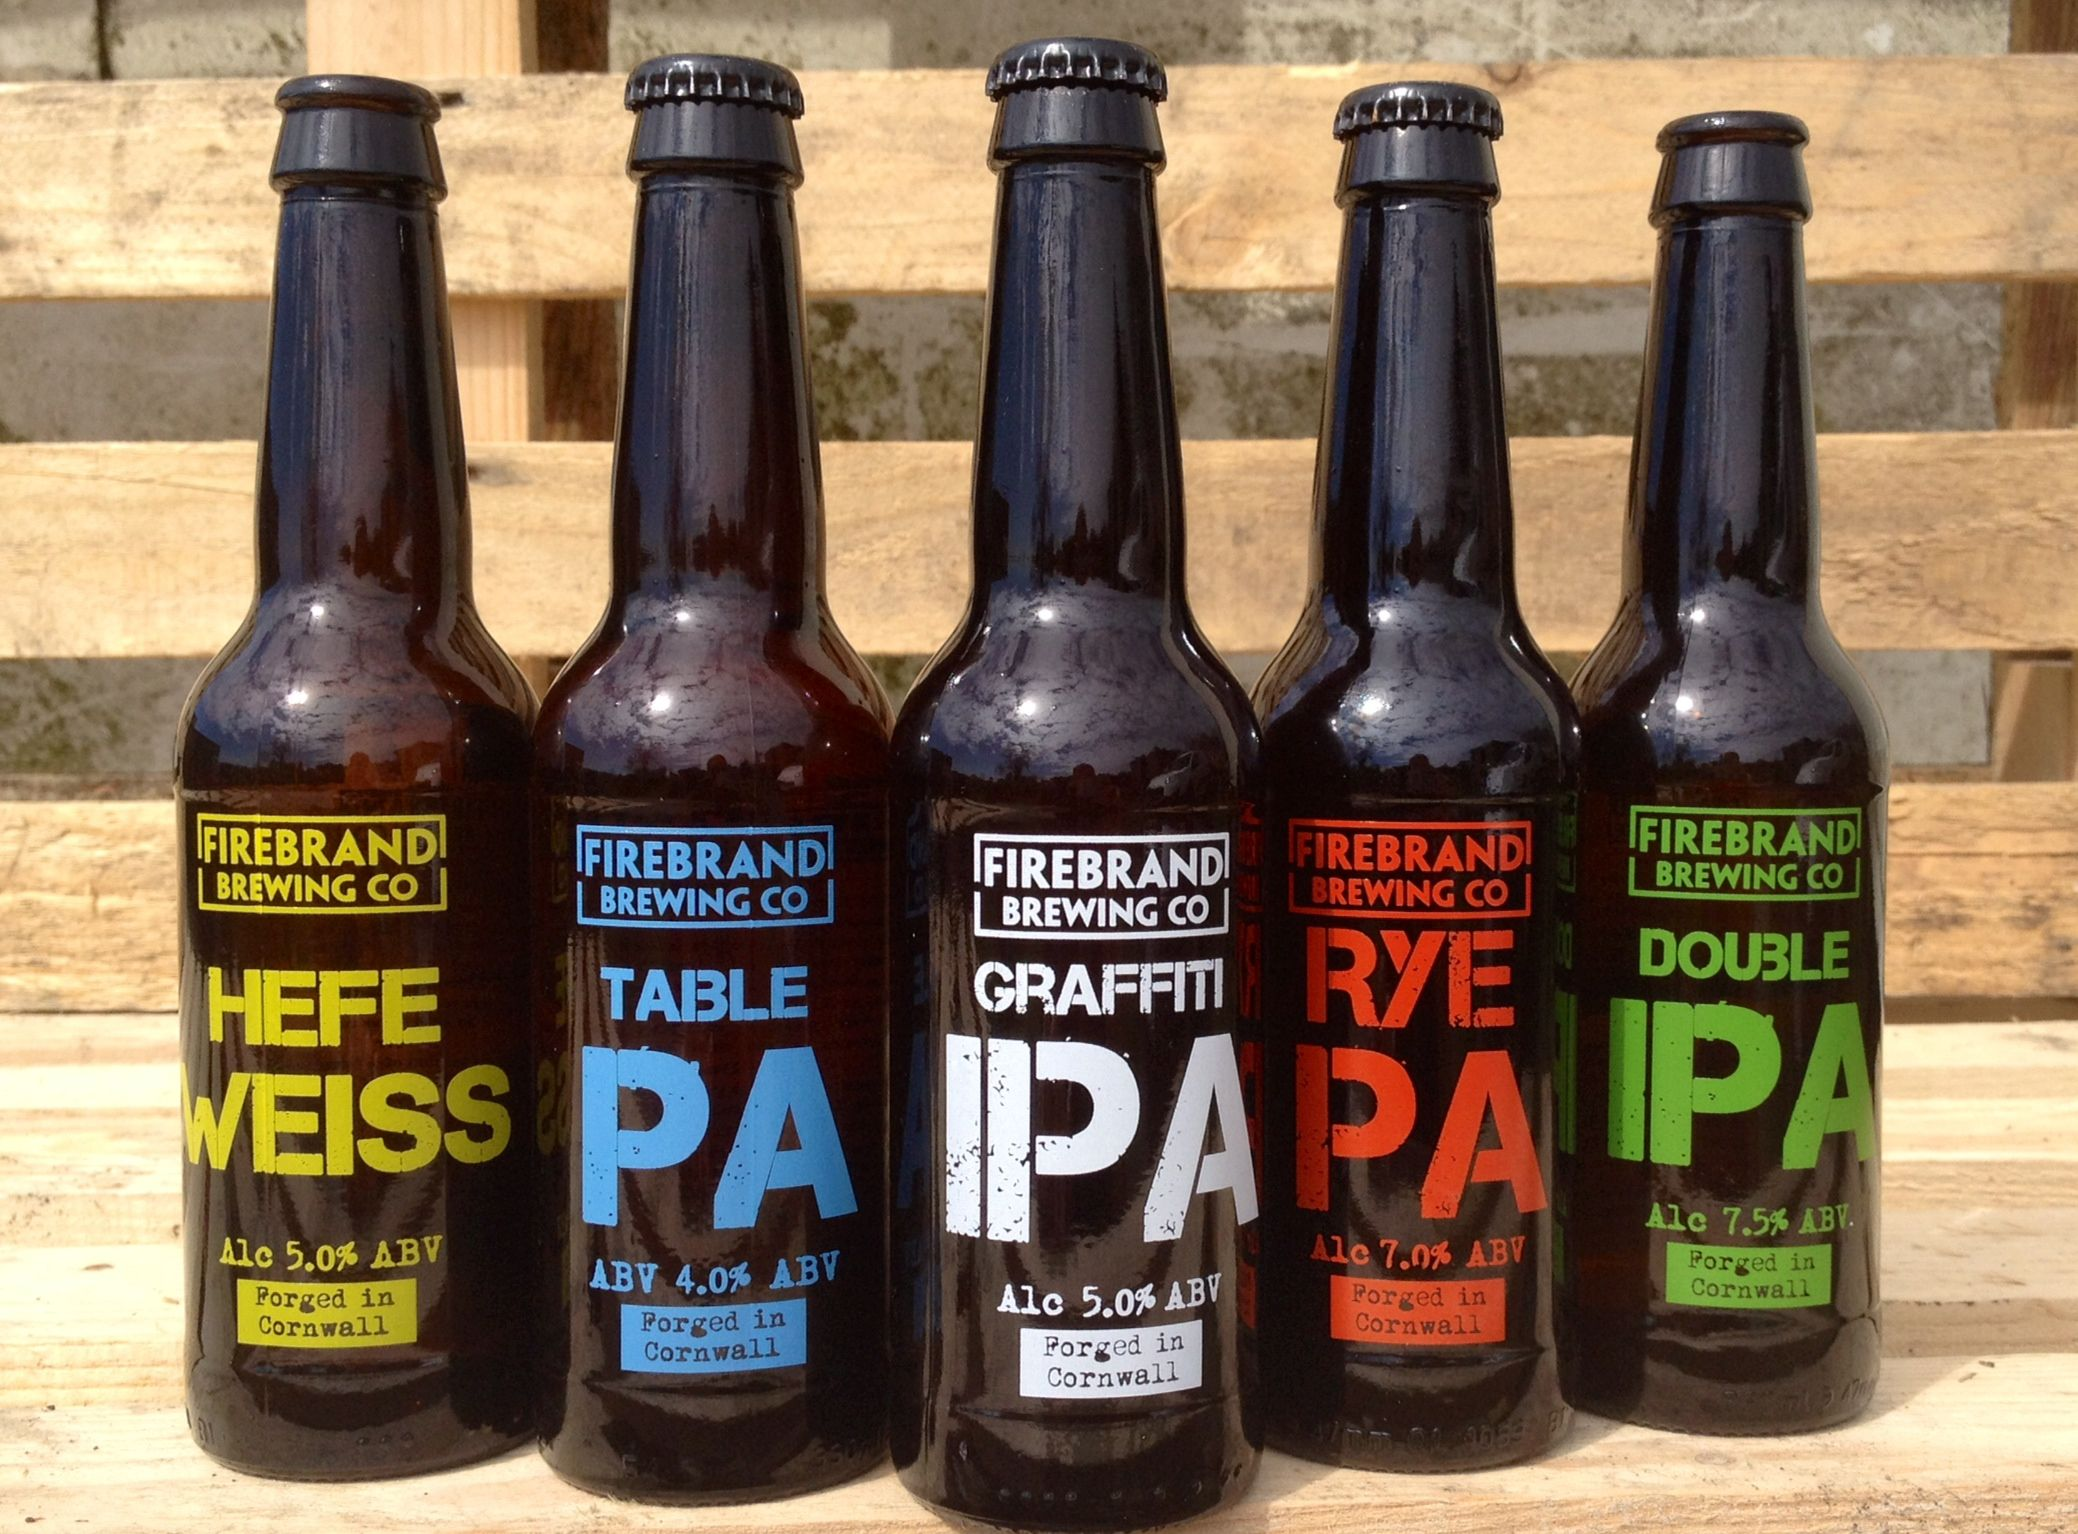 22+ Craft beer and brewing magazine uk ideas in 2021